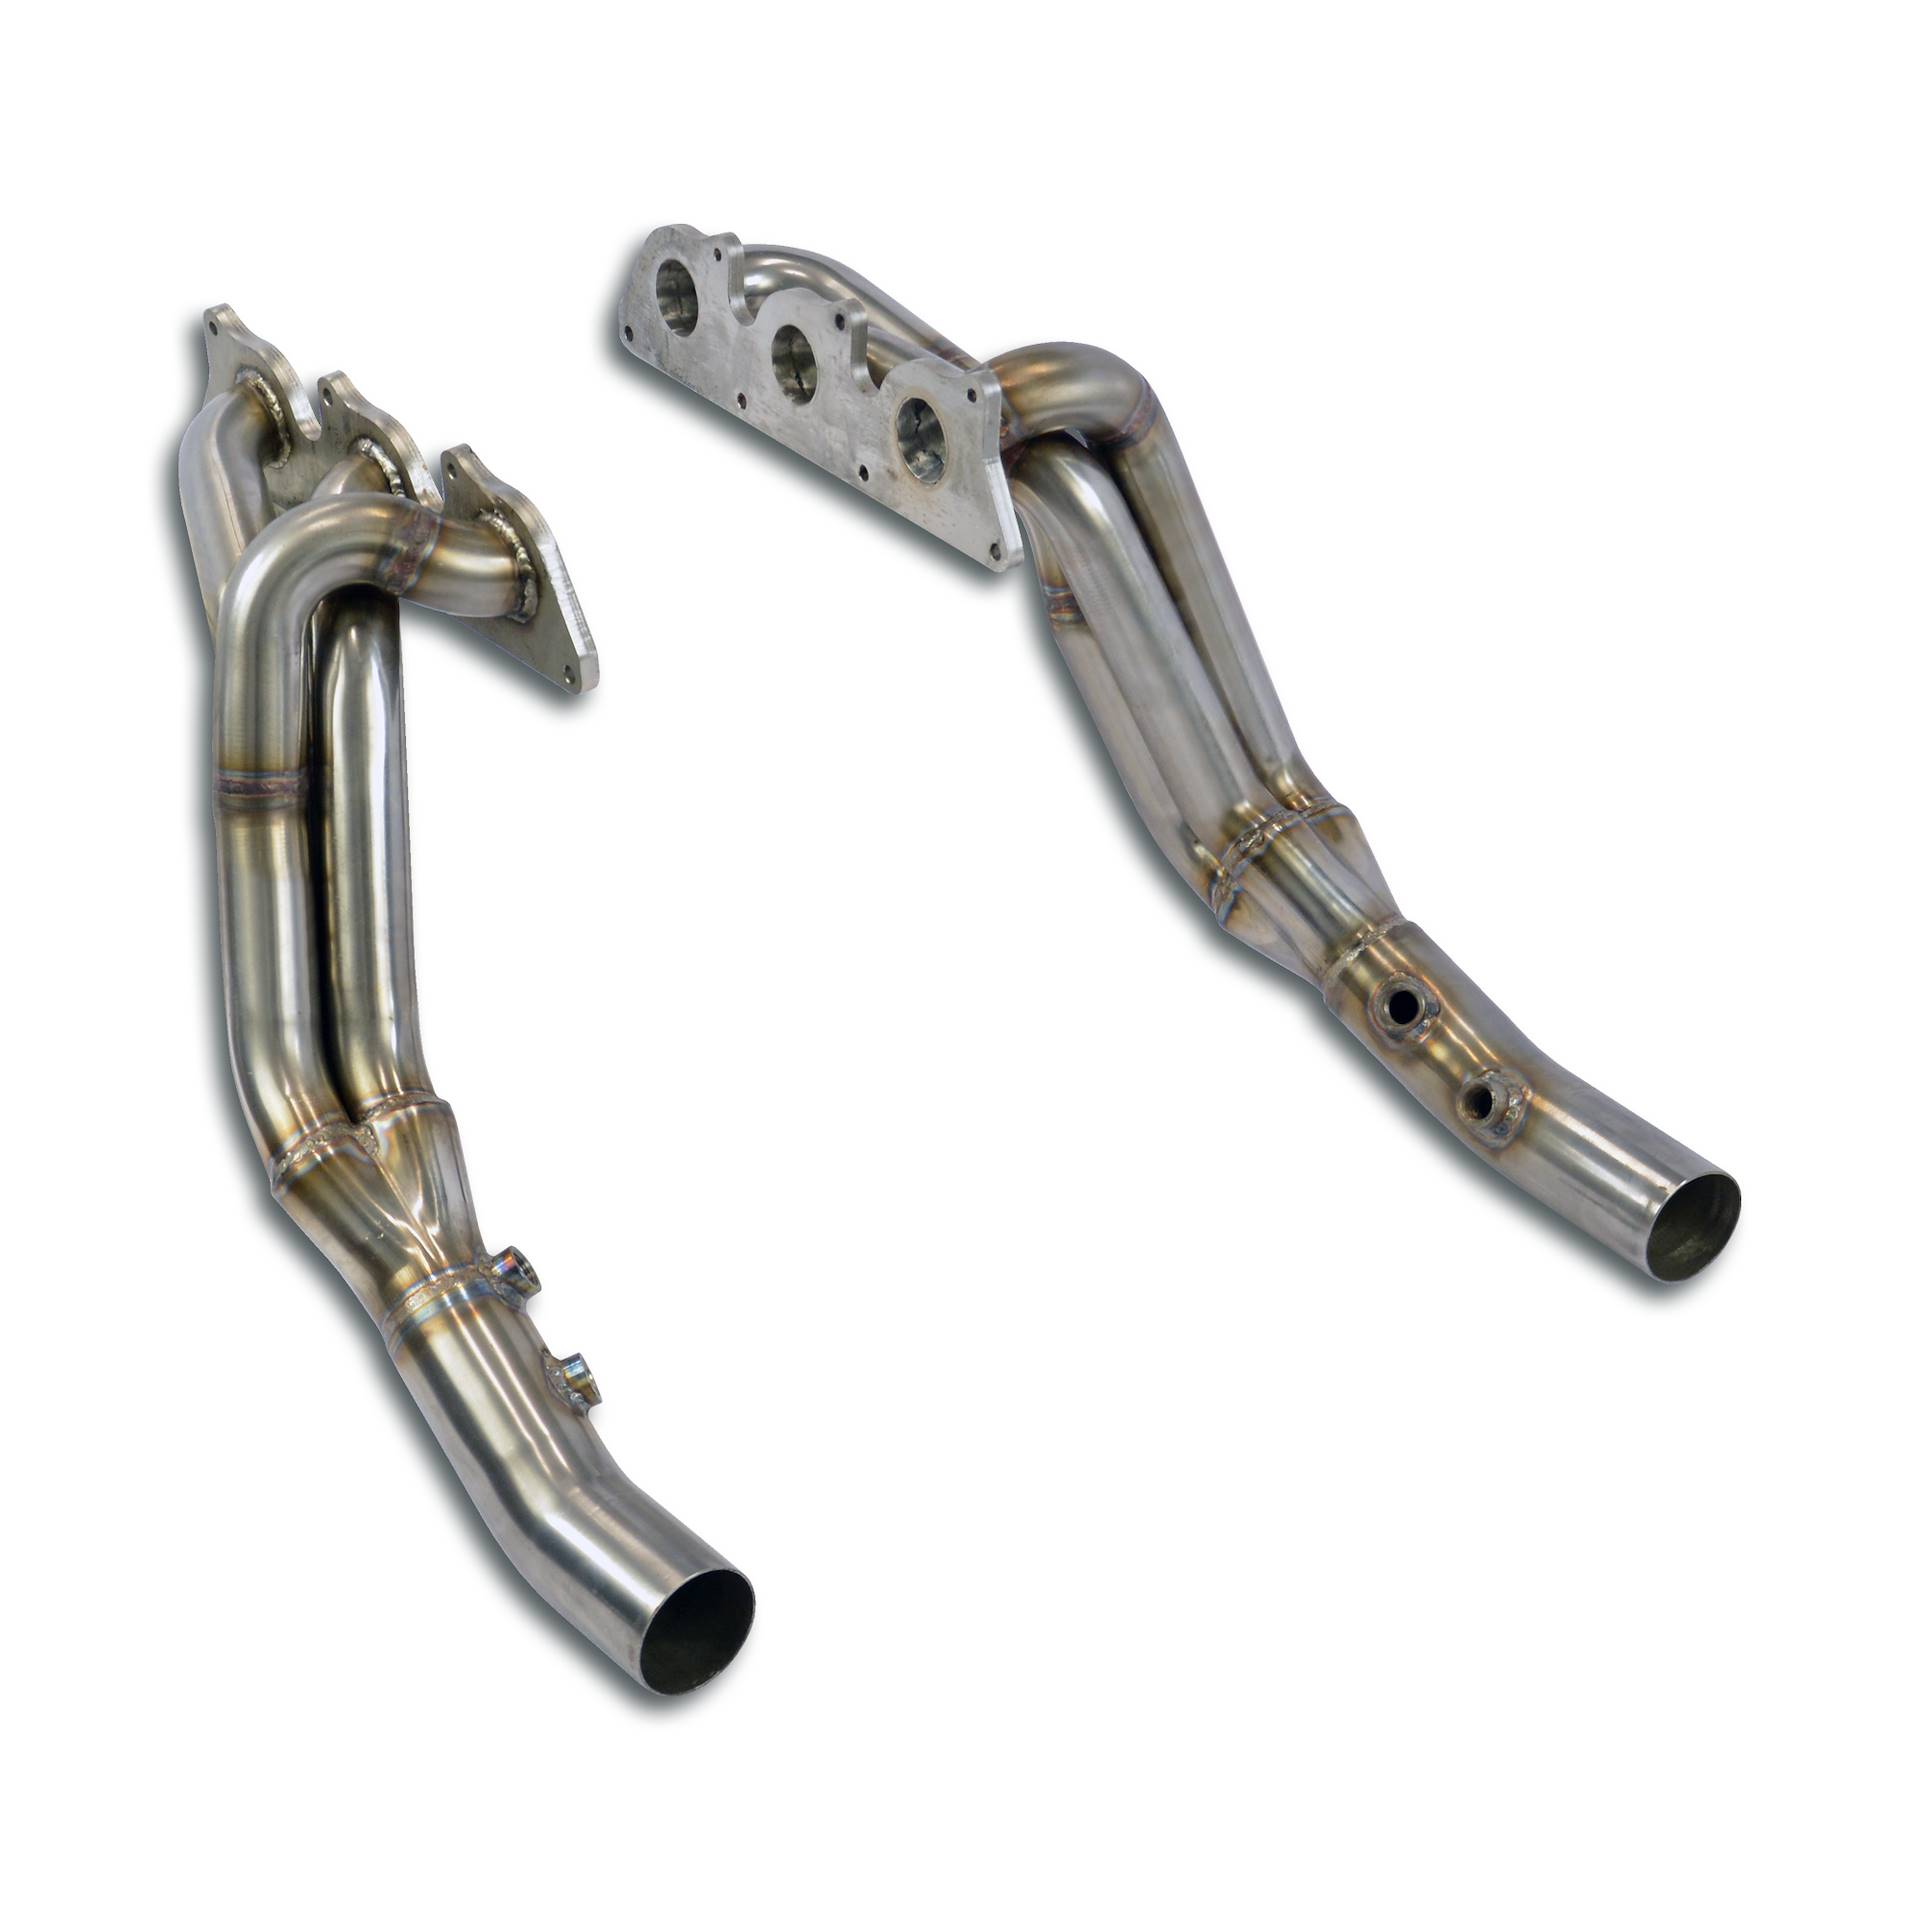 Mercedes - MERCEDES W204 C 350 CGI V6 (M272 3.5L - 292 Hp / 306 Hp) '08 ->'14 Headers kit<br>(Left Hand Drive model only), performance exhaust systems